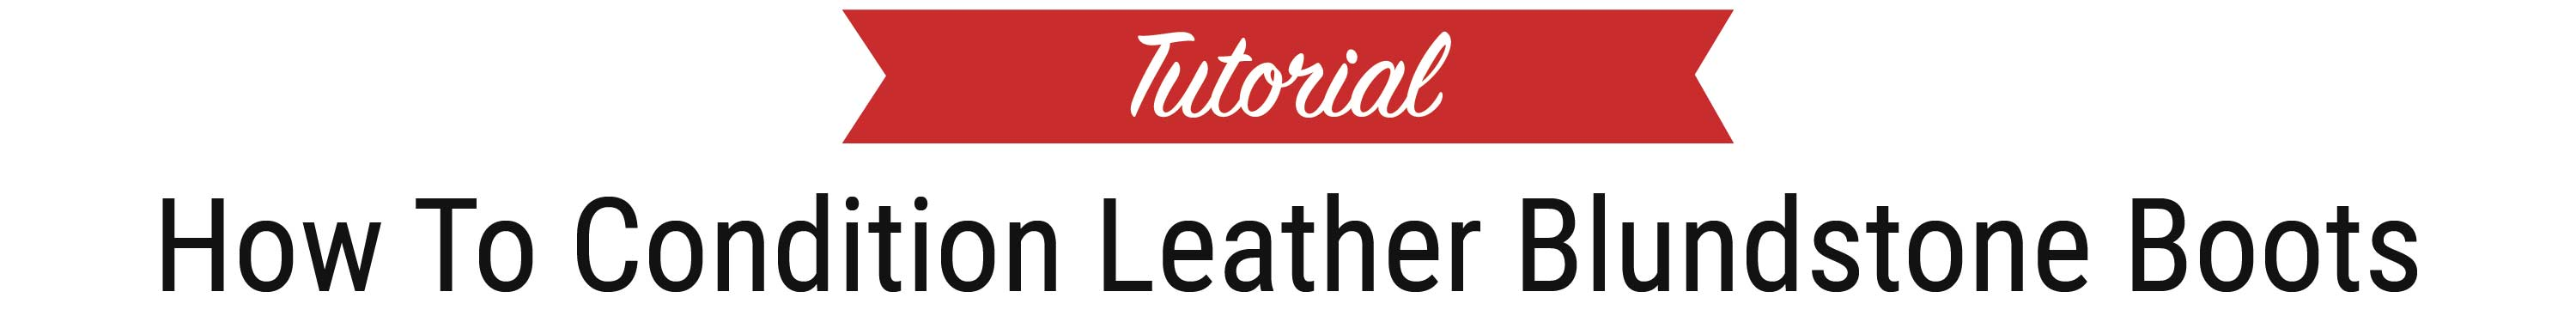 How To Condition Leather Blundstone Boots